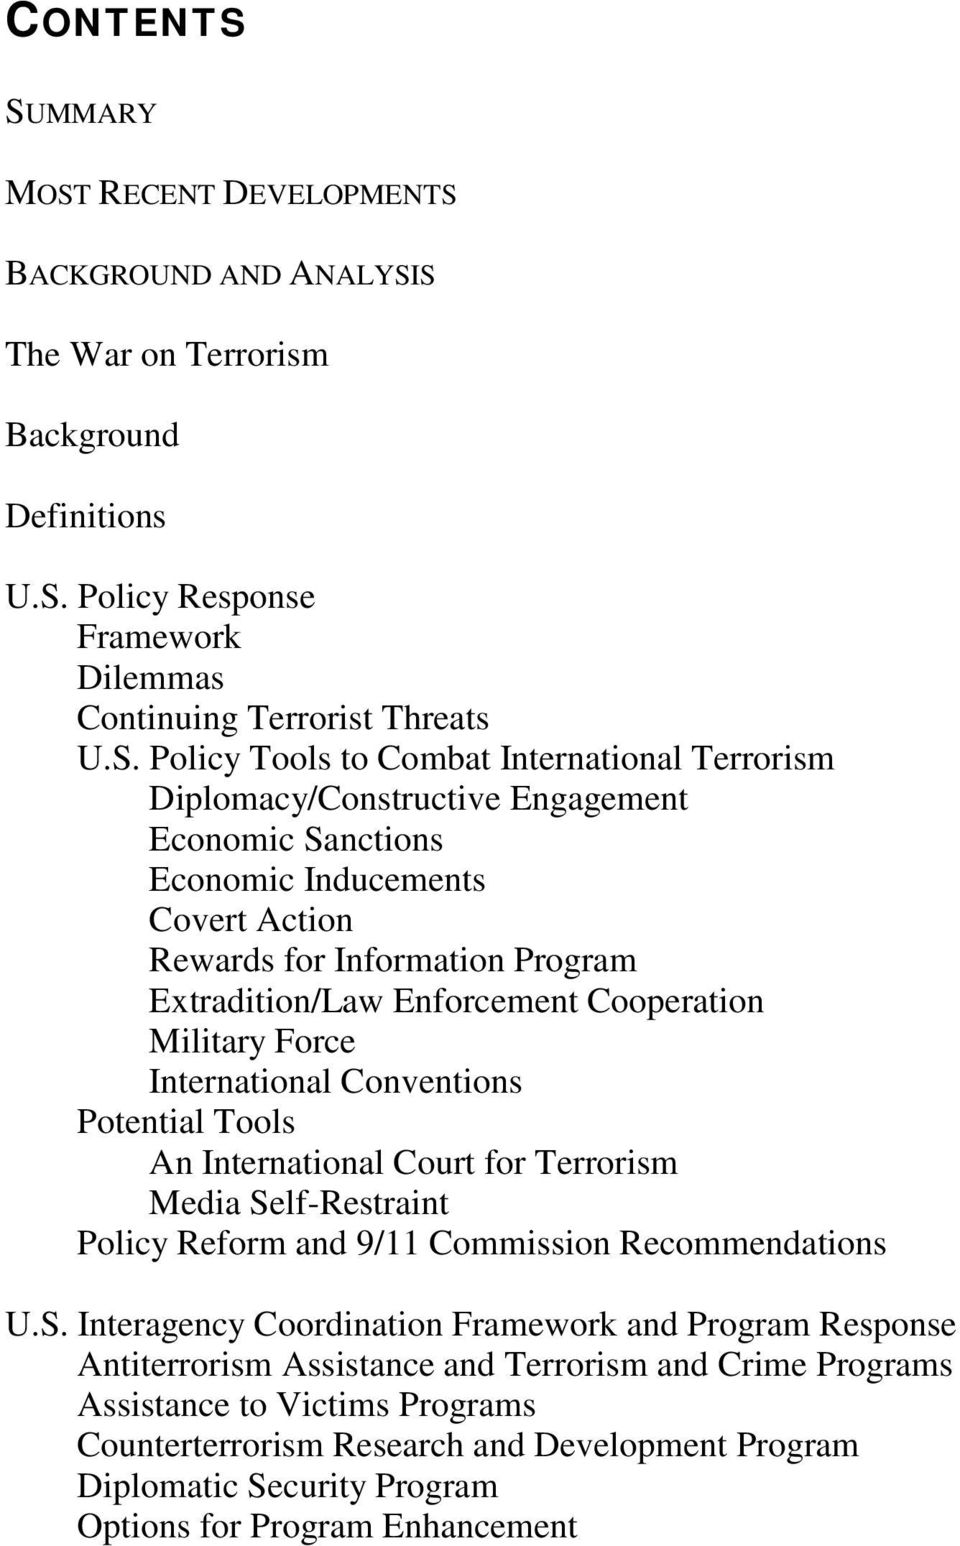 International Terrorism Diplomacy/Constructive Engagement Economic Sanctions Economic Inducements Covert Action Rewards for Information Program Extradition/Law Enforcement Cooperation Military Force